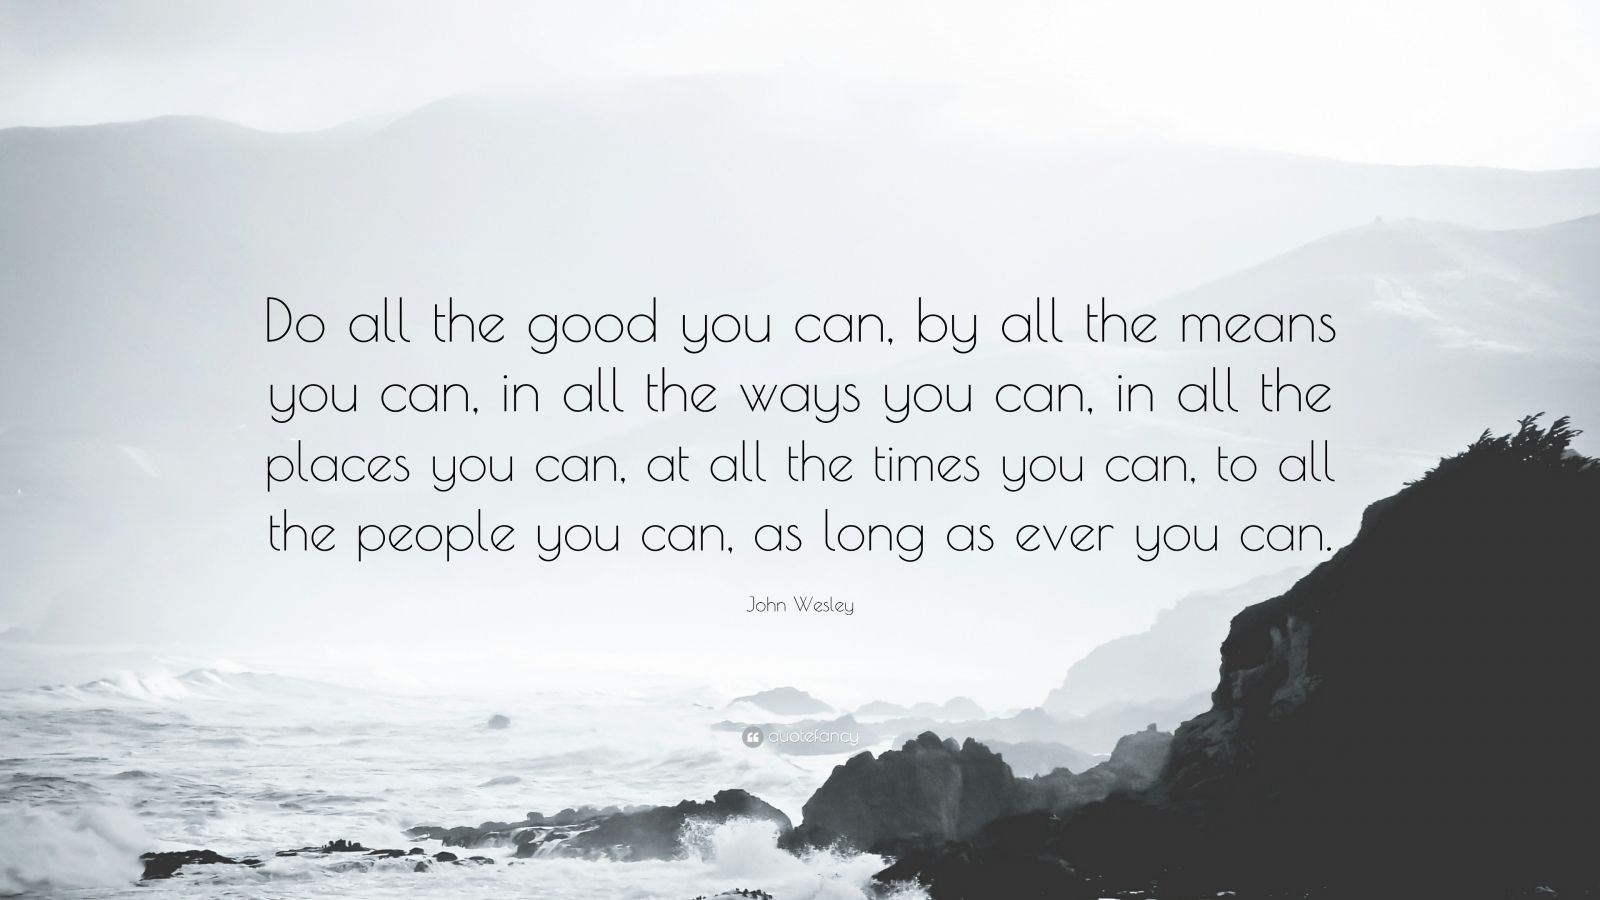 """John Wesley Quote: """"Do all the good you can, by all the means you can, in all the ways you can, in all the places you can, at all the times you can, to all the people you can, as long as ever you can."""""""